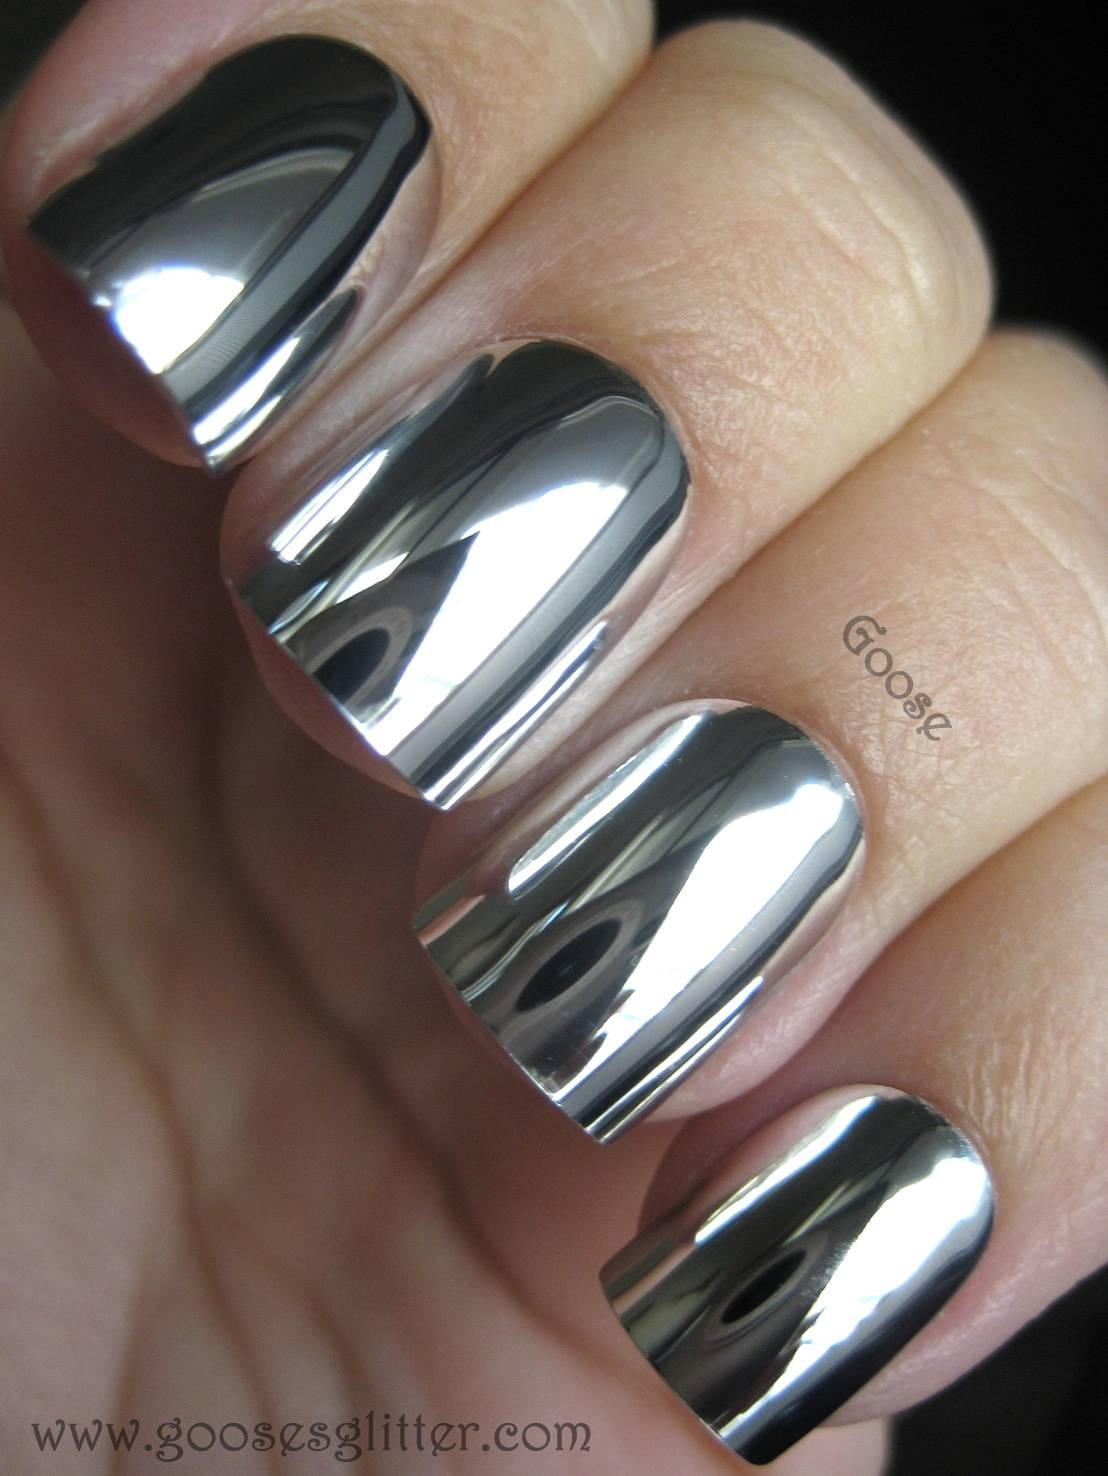 Goose's Glitter: Mirror Nails intended for Silver Glitter Mirrors (Image 14 of 25)